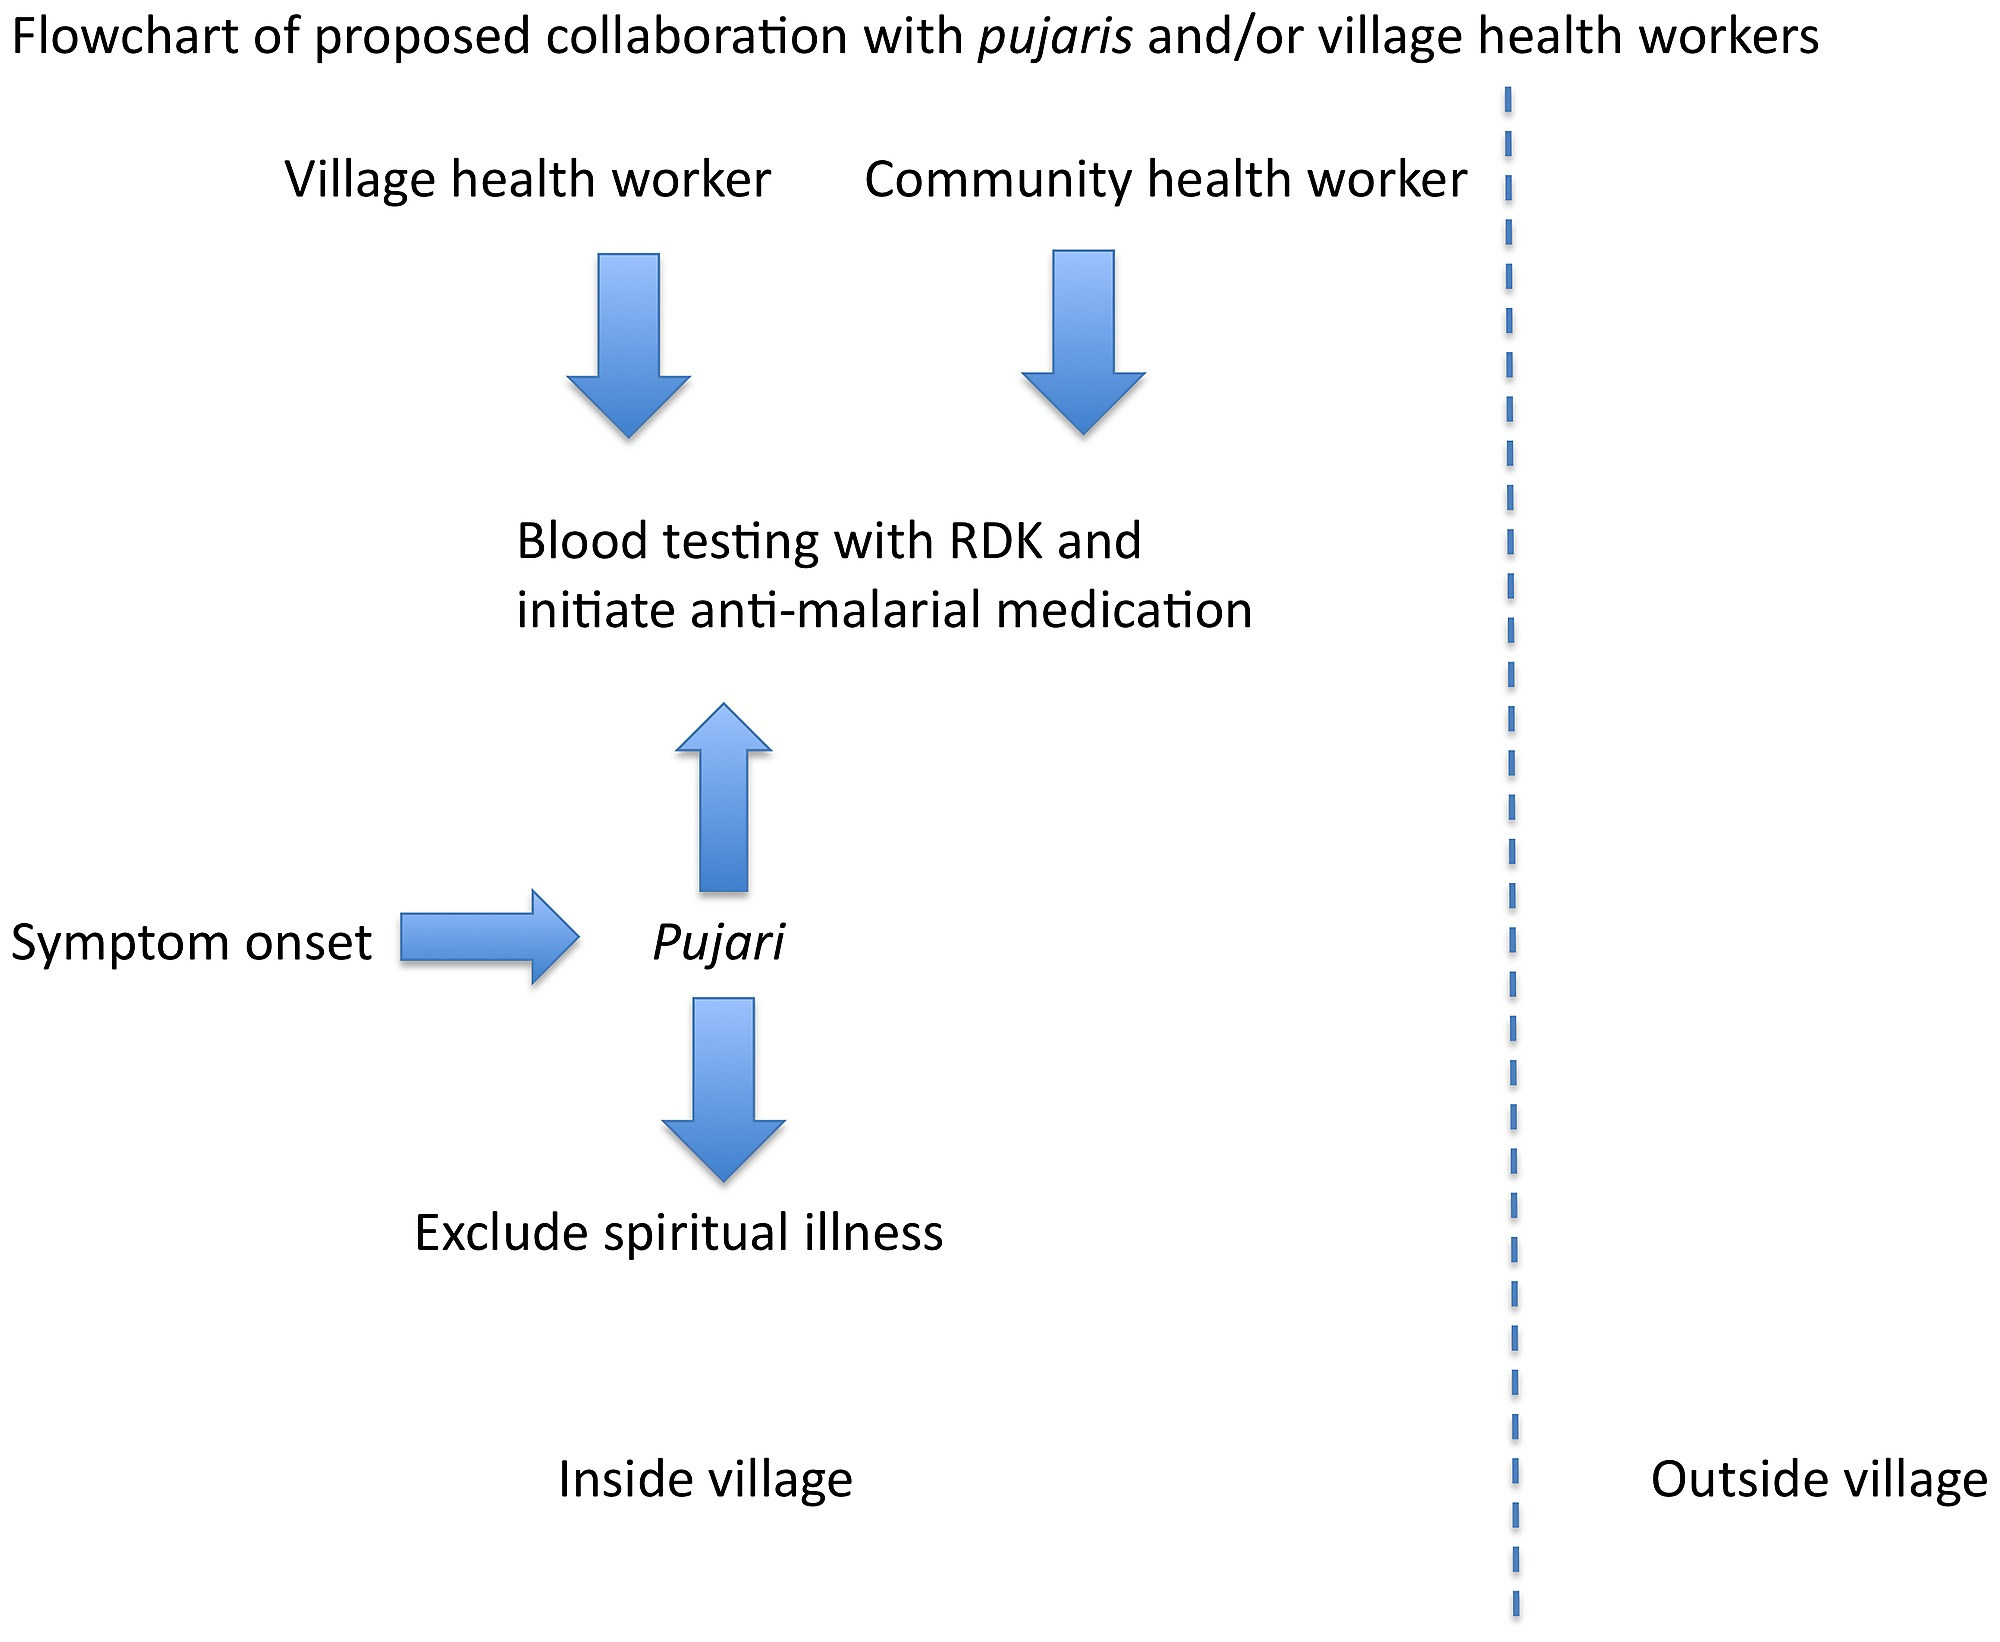 hight resolution of flowchart demonstrating proposed collaboration with pujaris for prompt malaria diagnosis beginning at the onset of symptoms in tribal village